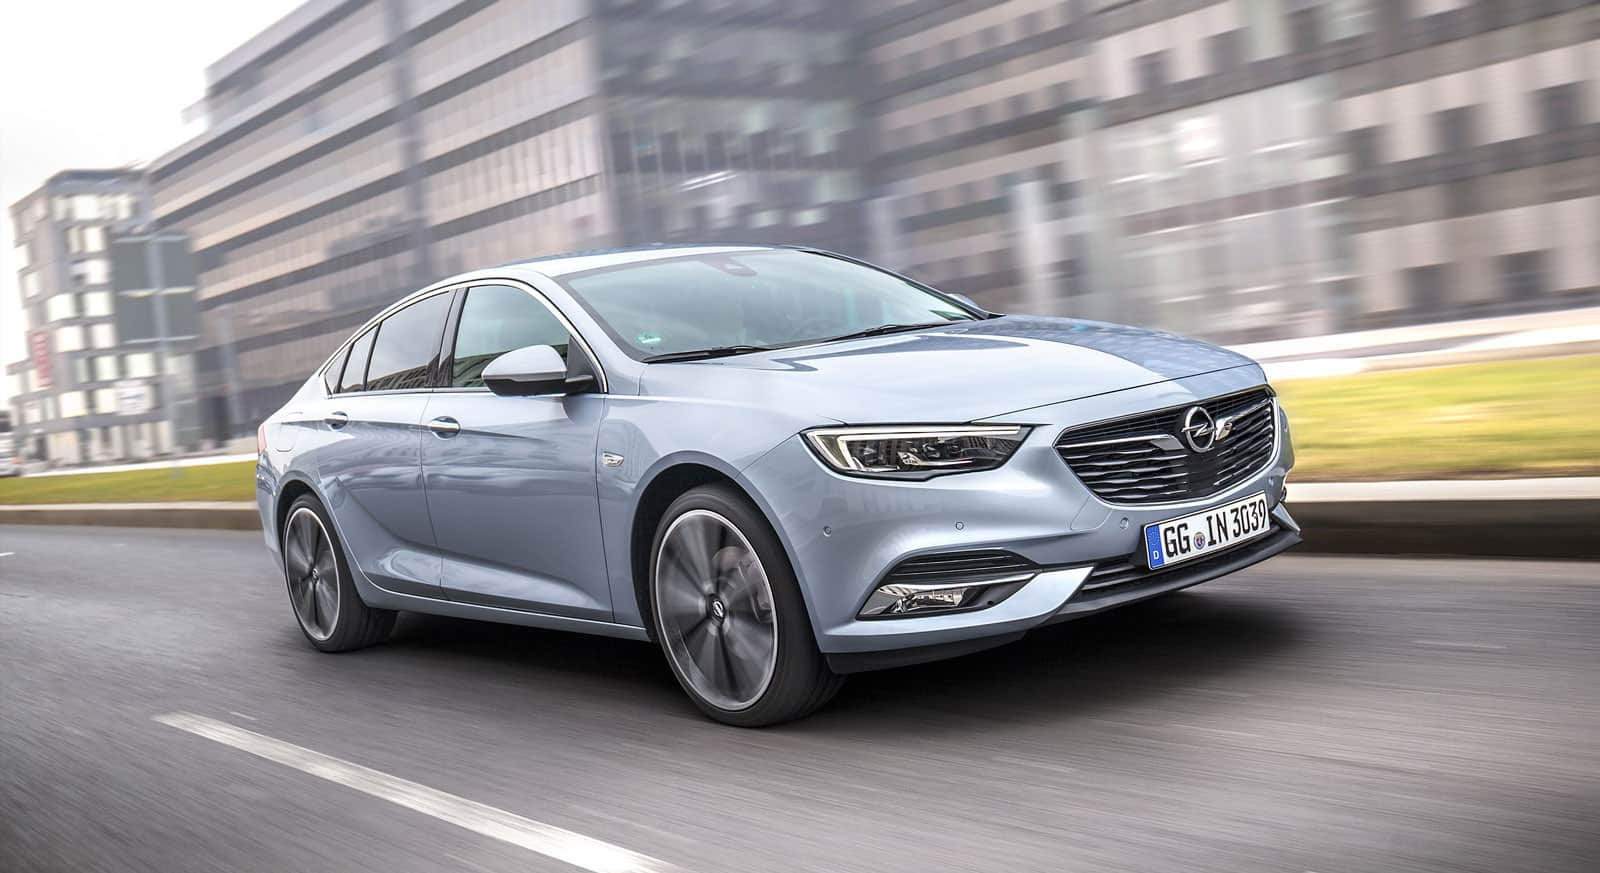 Opel Insignia frontal